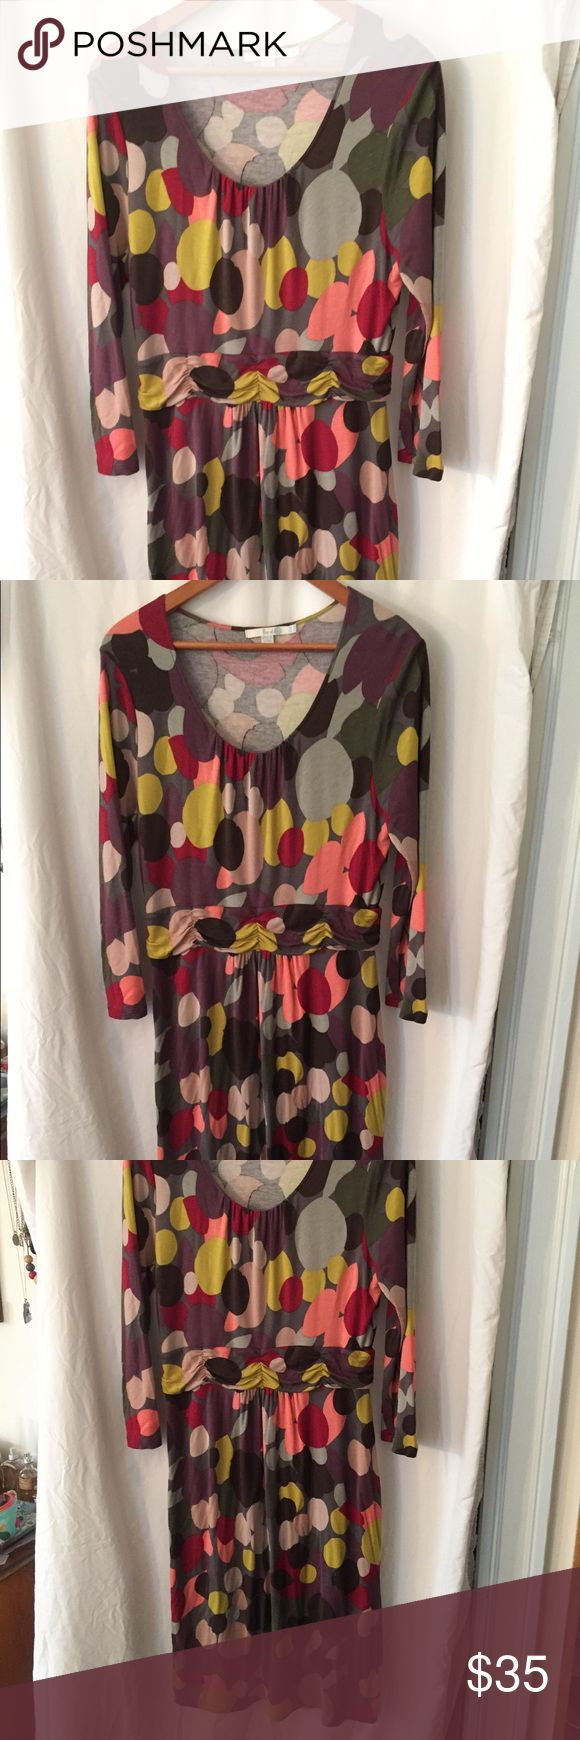 """BODEN spotty jersey dress w ruched waist Fun, bold spotty pattern in red, purple, magenta, yellow and gray.  Drop neckline, ruched waist w elastic, easy jersey skirt.  UK size 18/US 14R.                                                        Measurements, unstretched and laying flat:  chest 21"""", front length, 37"""", waist 18"""", back length, 42"""", hem, 26"""" Boden Dresses Long Sleeve"""